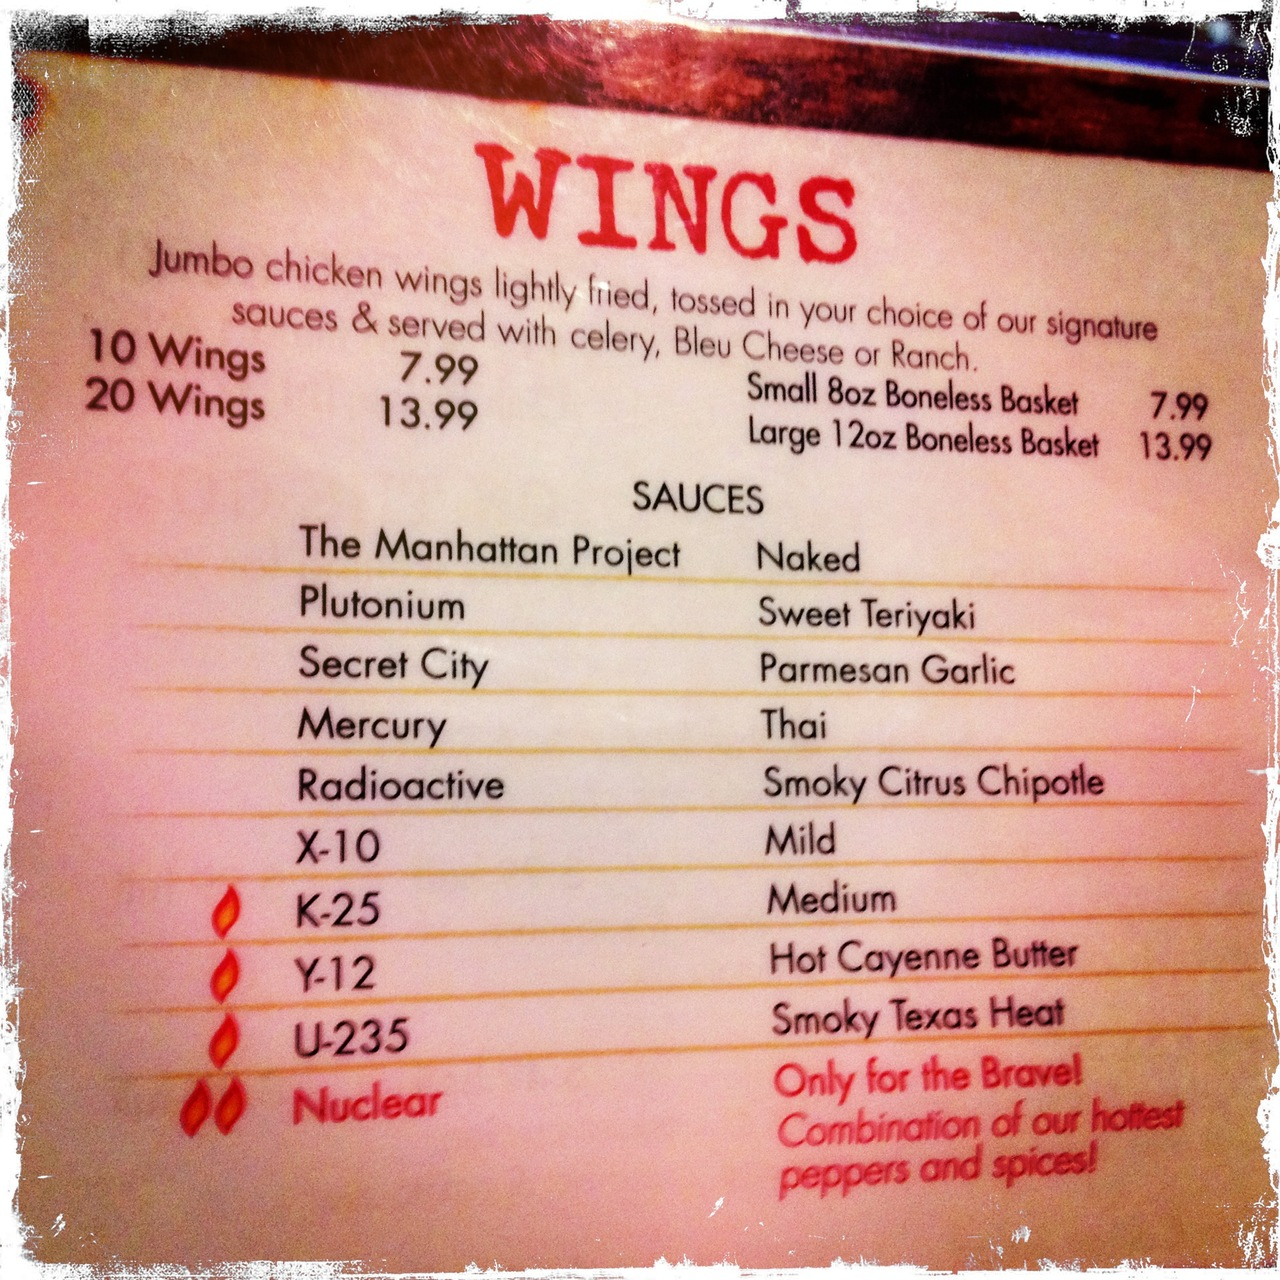 Yay! @LincolnsGrille after day of #atomic & #WW2 history in #OakRidge. #Nuclear wings! Lucifer VI Lens, Kodot XGrizzled Film, No Flash, Taken with Hipstamatic